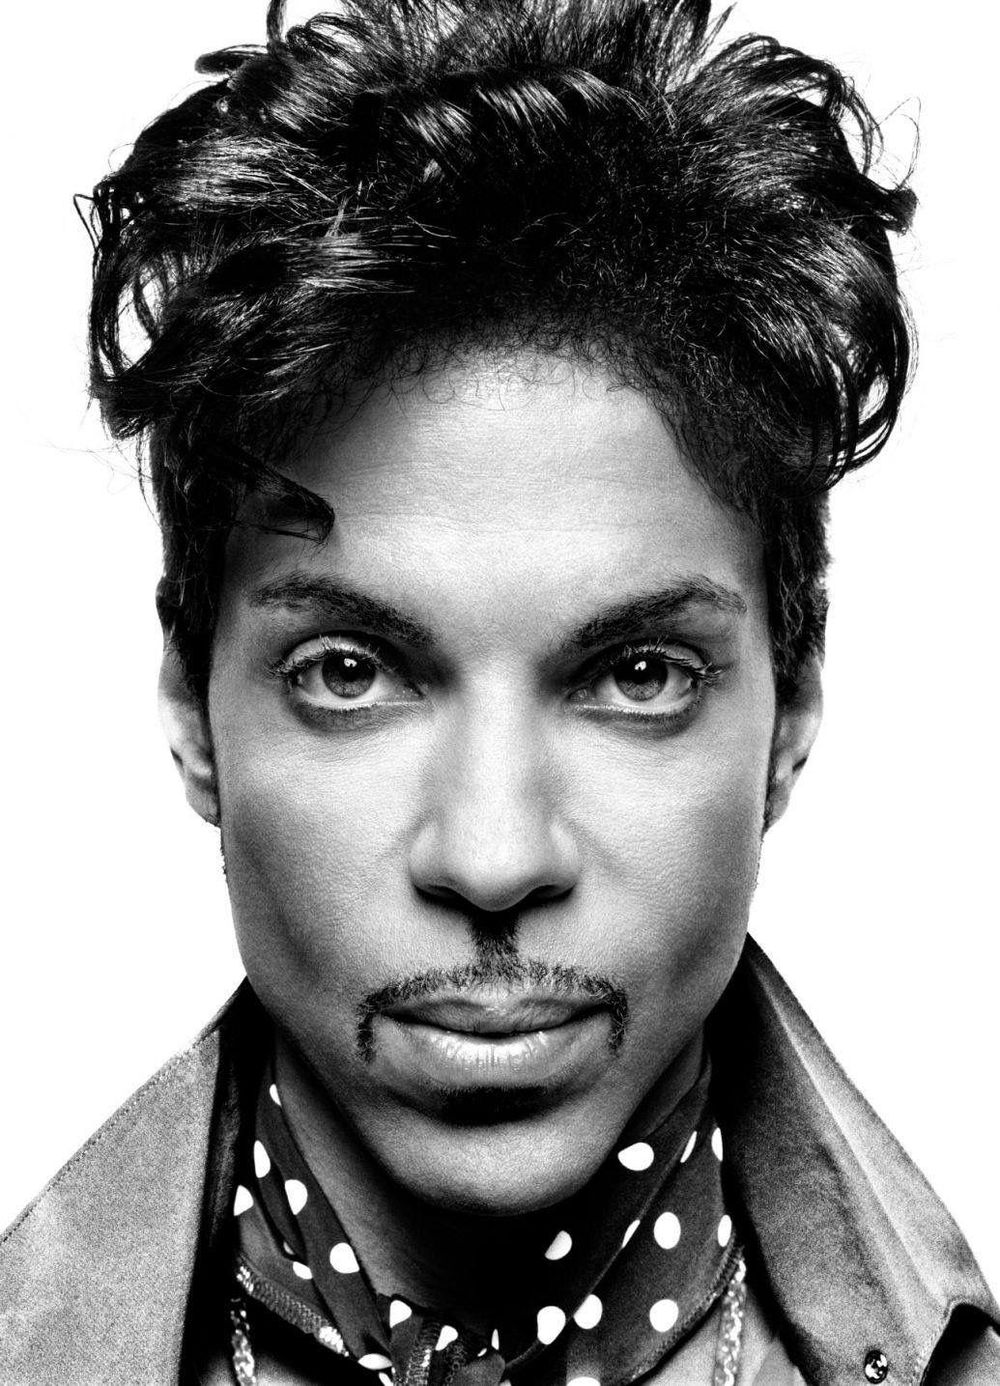 Prince pencil drawing - image 2 - student project